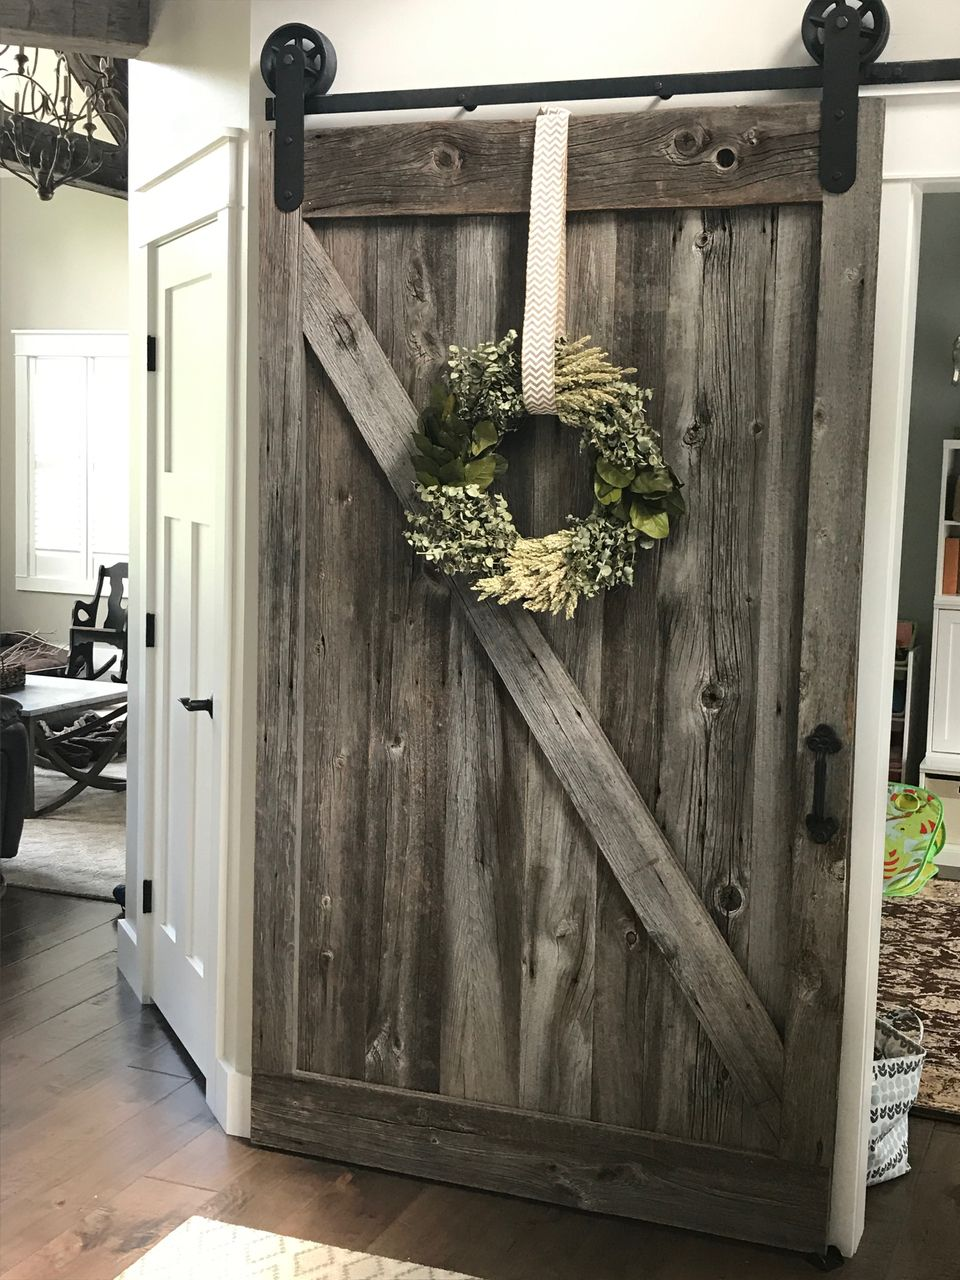 Superieur The Barn Door Hardware Store Offers Fully Customizable Or Pre Packaged Barn Door  Hardware Kits And